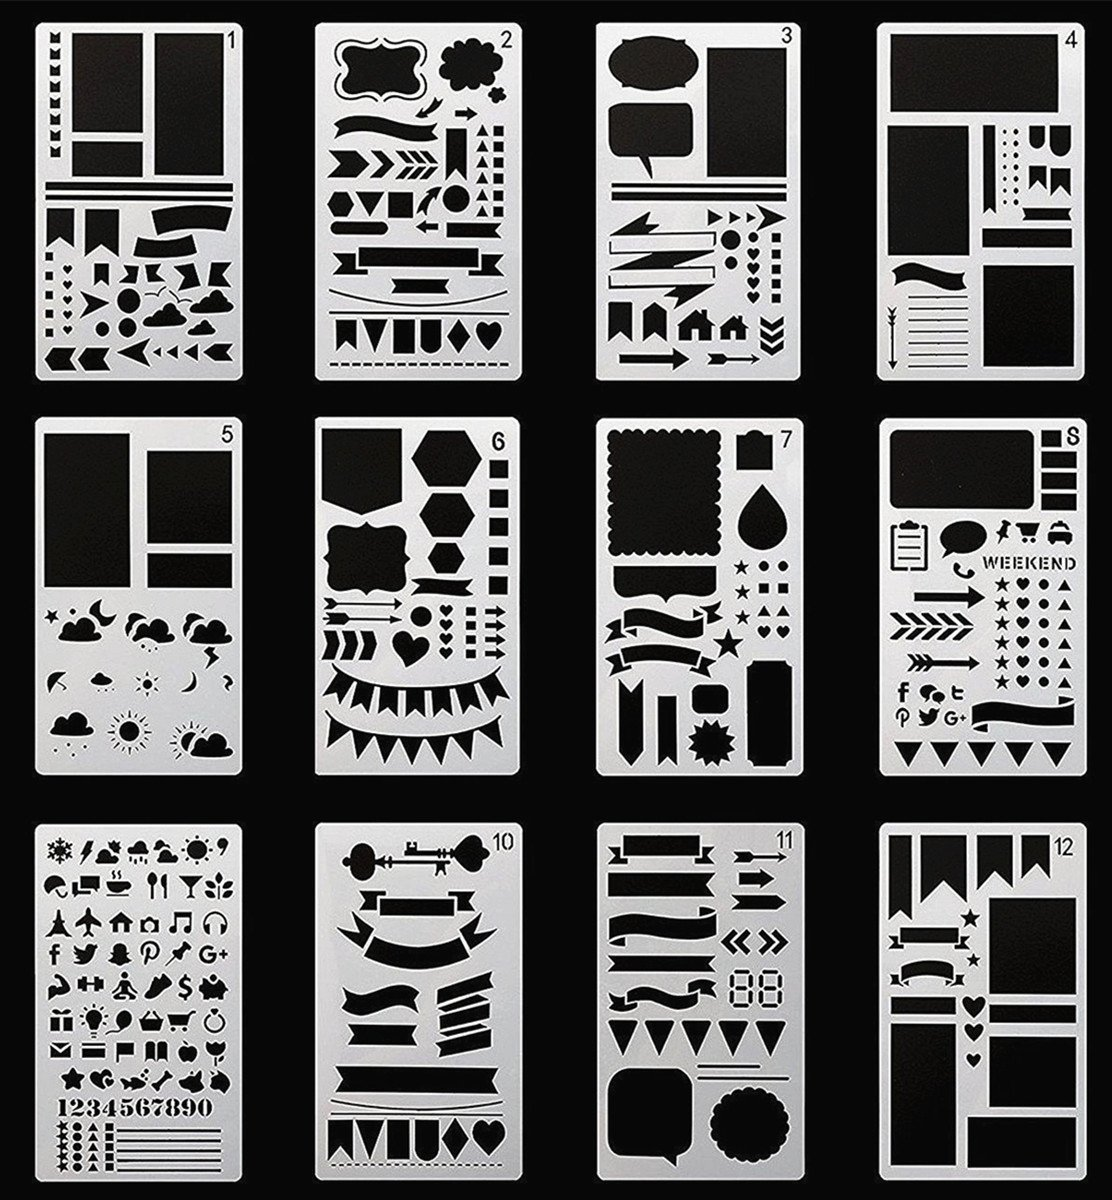 Bullet Journal Stencil,GEOTEL Easy Placement Light Ultra Thin Semitransparent Plastic Planner Stencils Journal/Notebook/Diary/Scrapbook DIY Drawing Template Stencil 4x7 Inch, 12 Pieces 4336890692